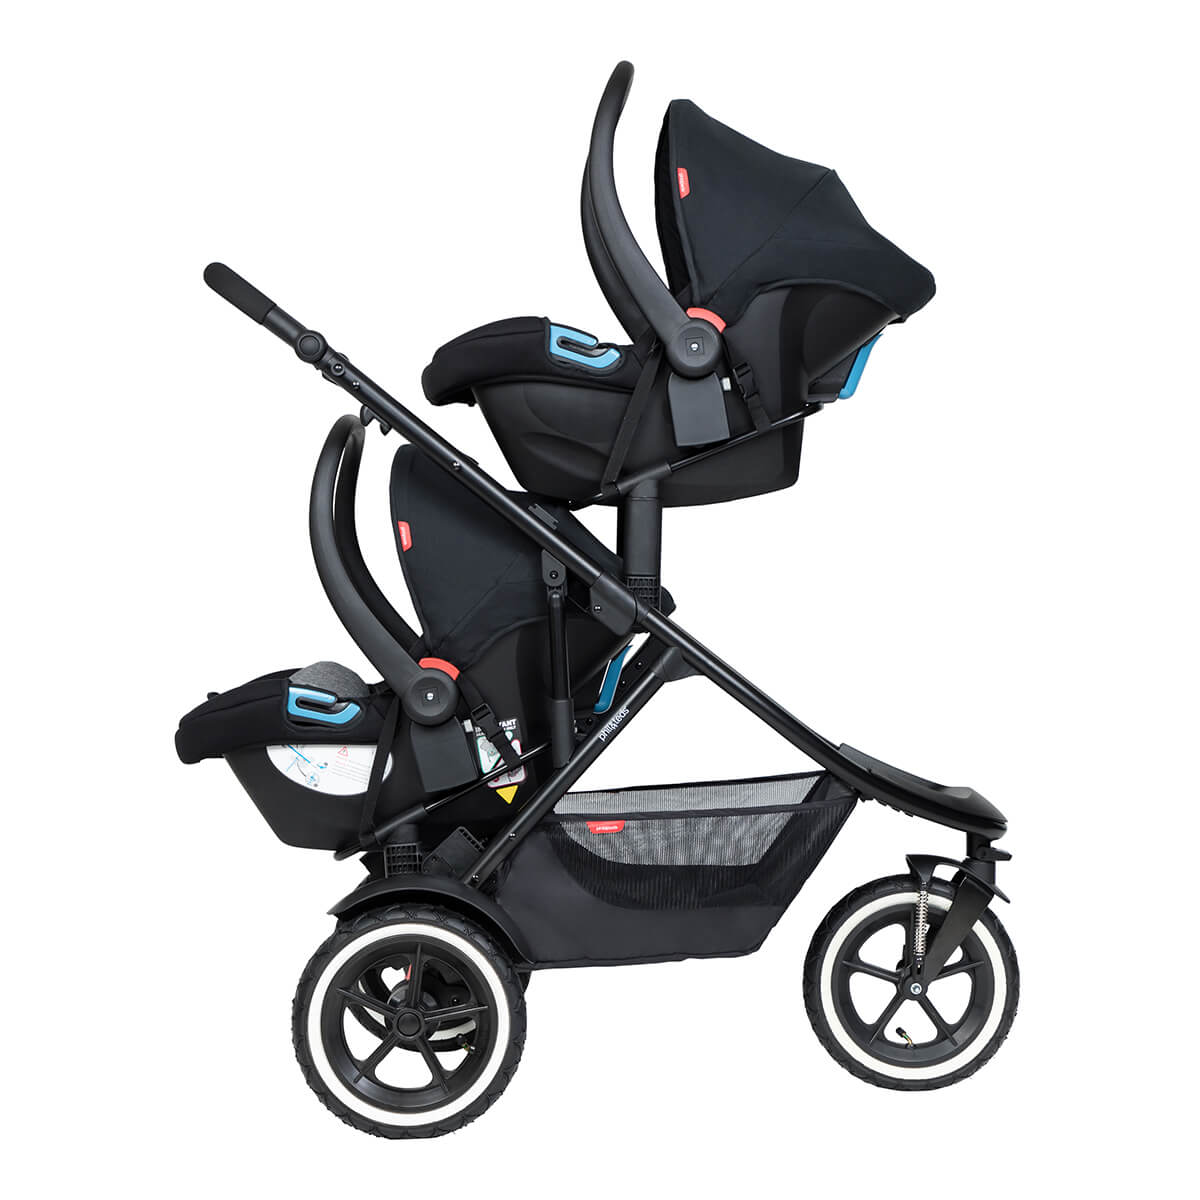 https://cdn.accentuate.io/4509866721377/19793940447402/philteds-sport-buggy-with-double-alpha-travel-system-v1626485341042.jpg?1200x1200